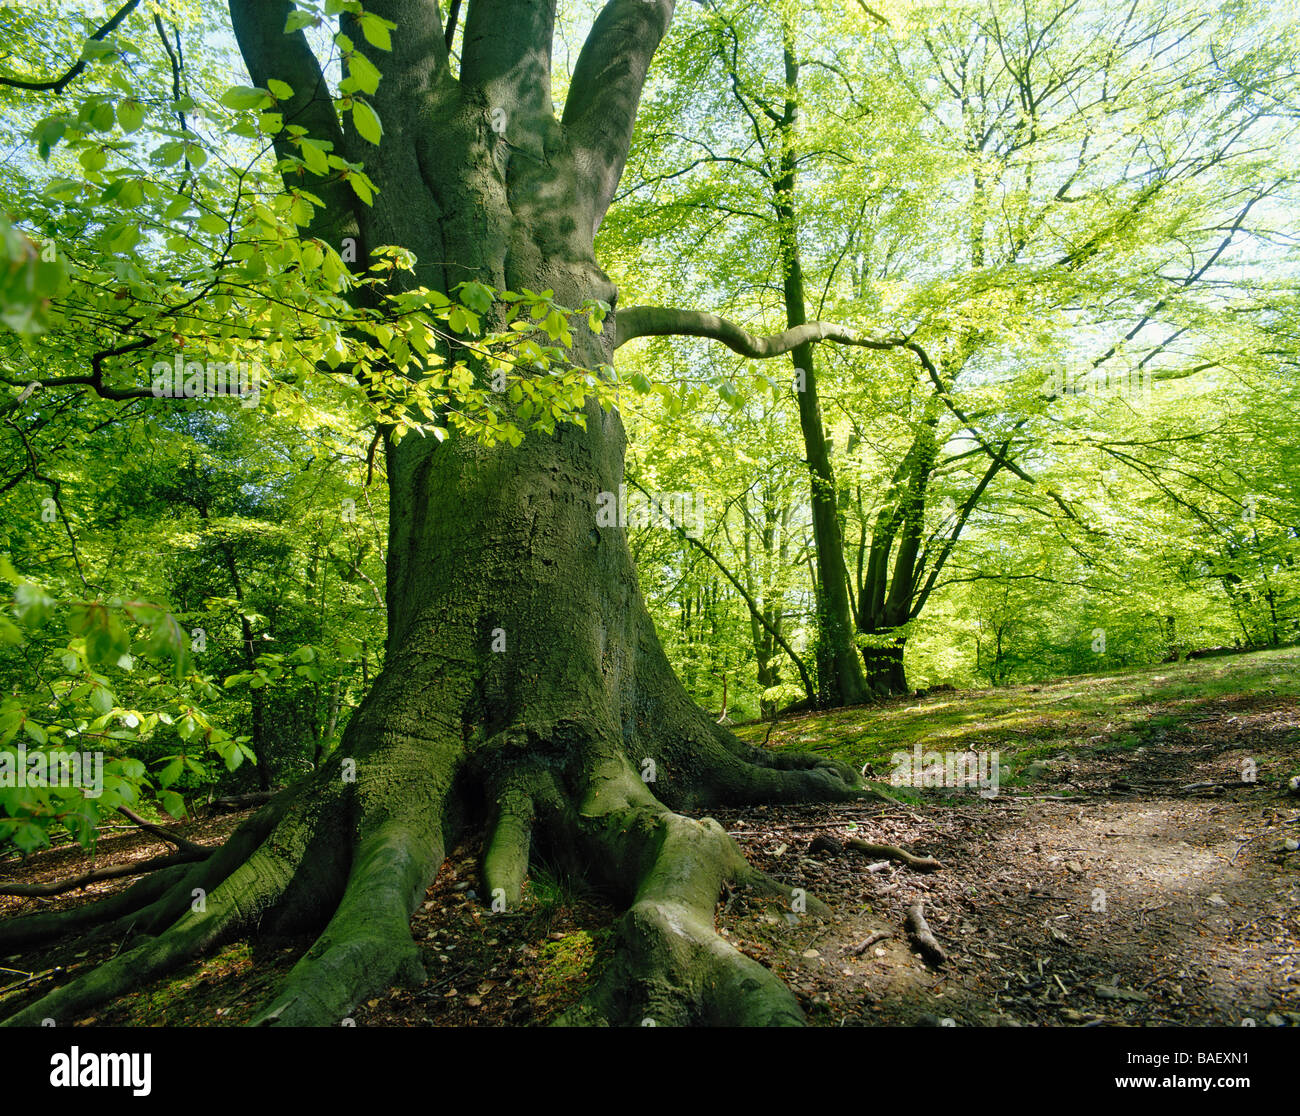 GB ESSEX EPPING FOREST GREAT MONK WOOD - Stock Image